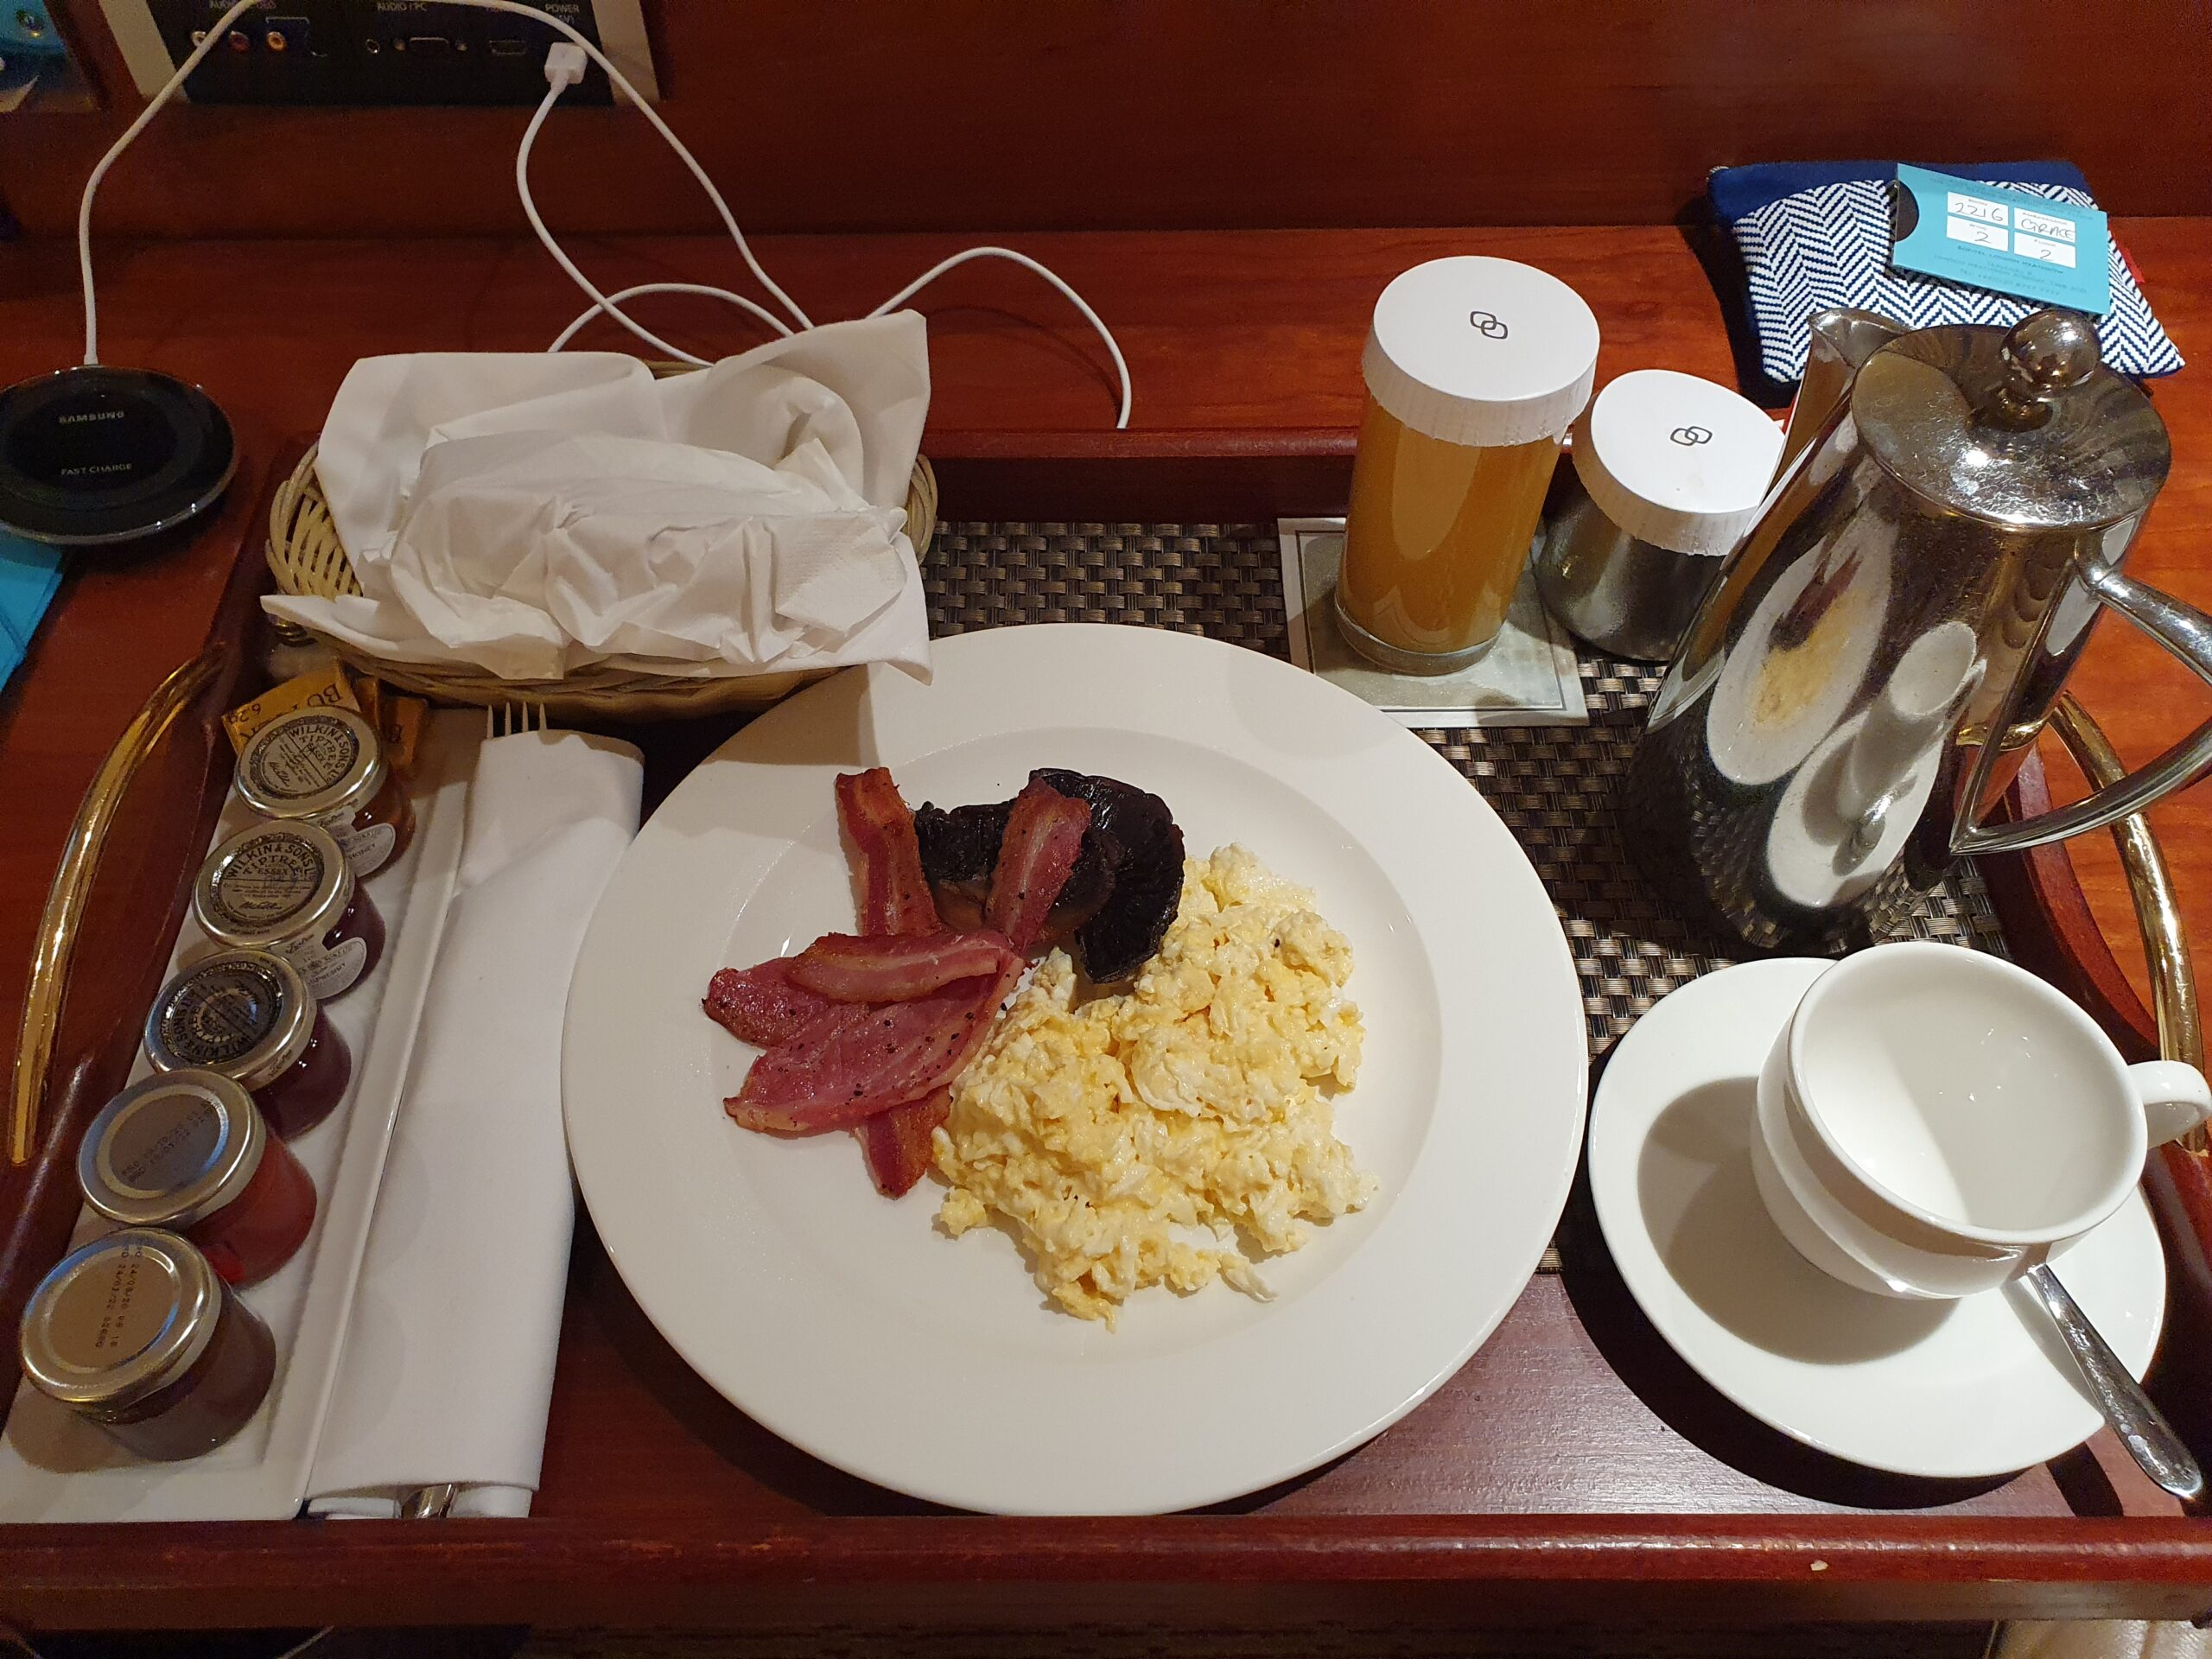 You can't see my big smile, but this was my ultimate treat. Room service :0)